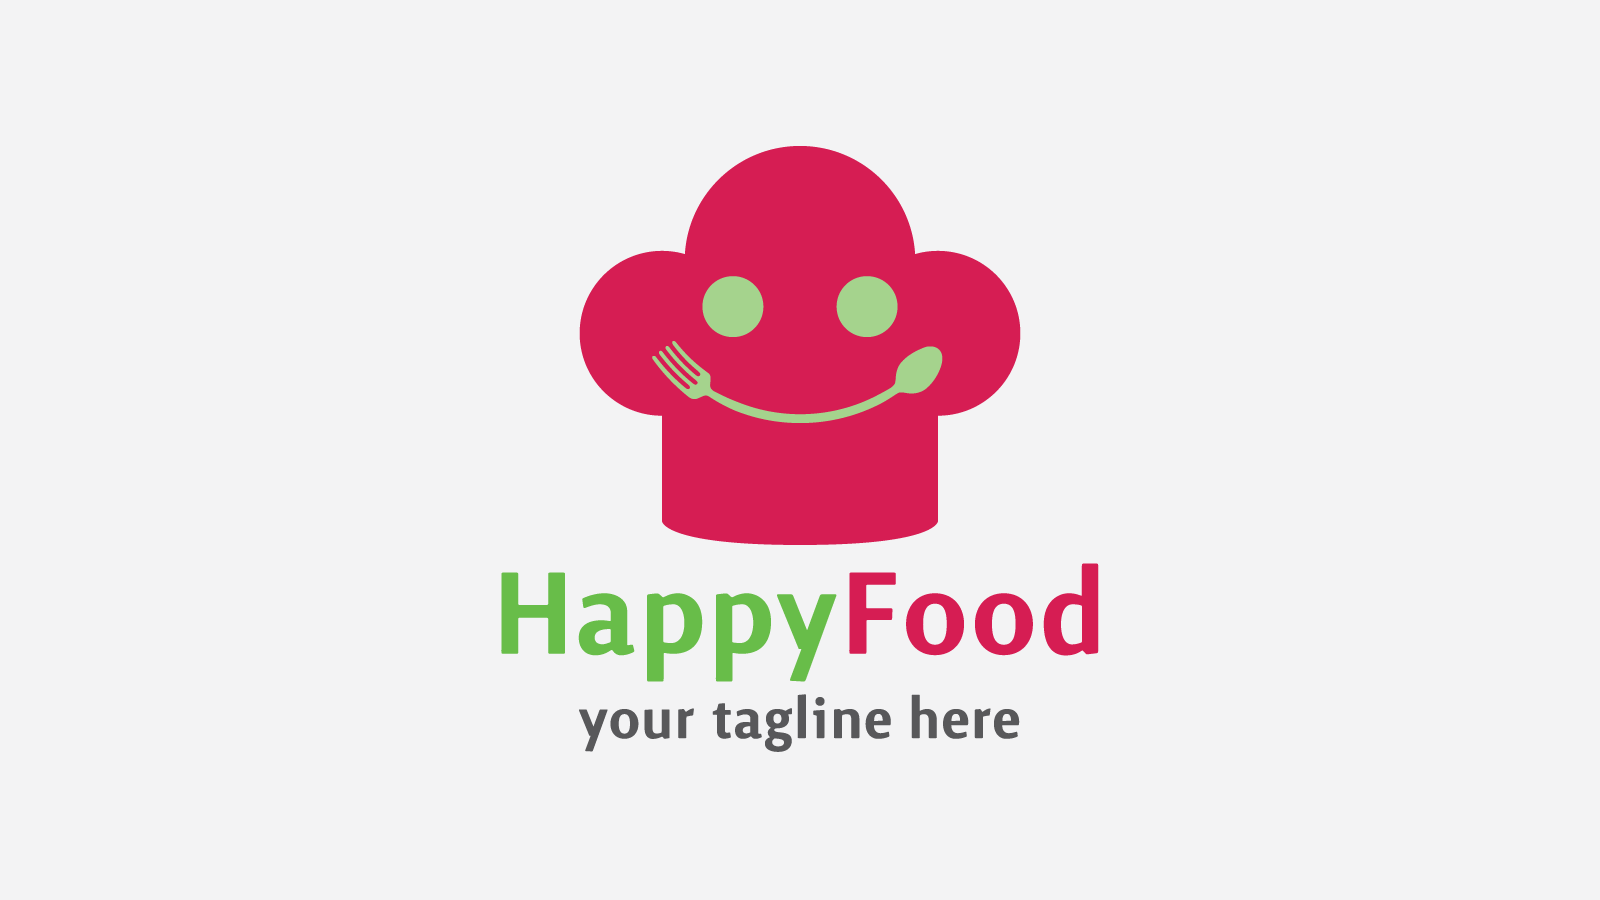 Happyfood Free Business Logo Design Template